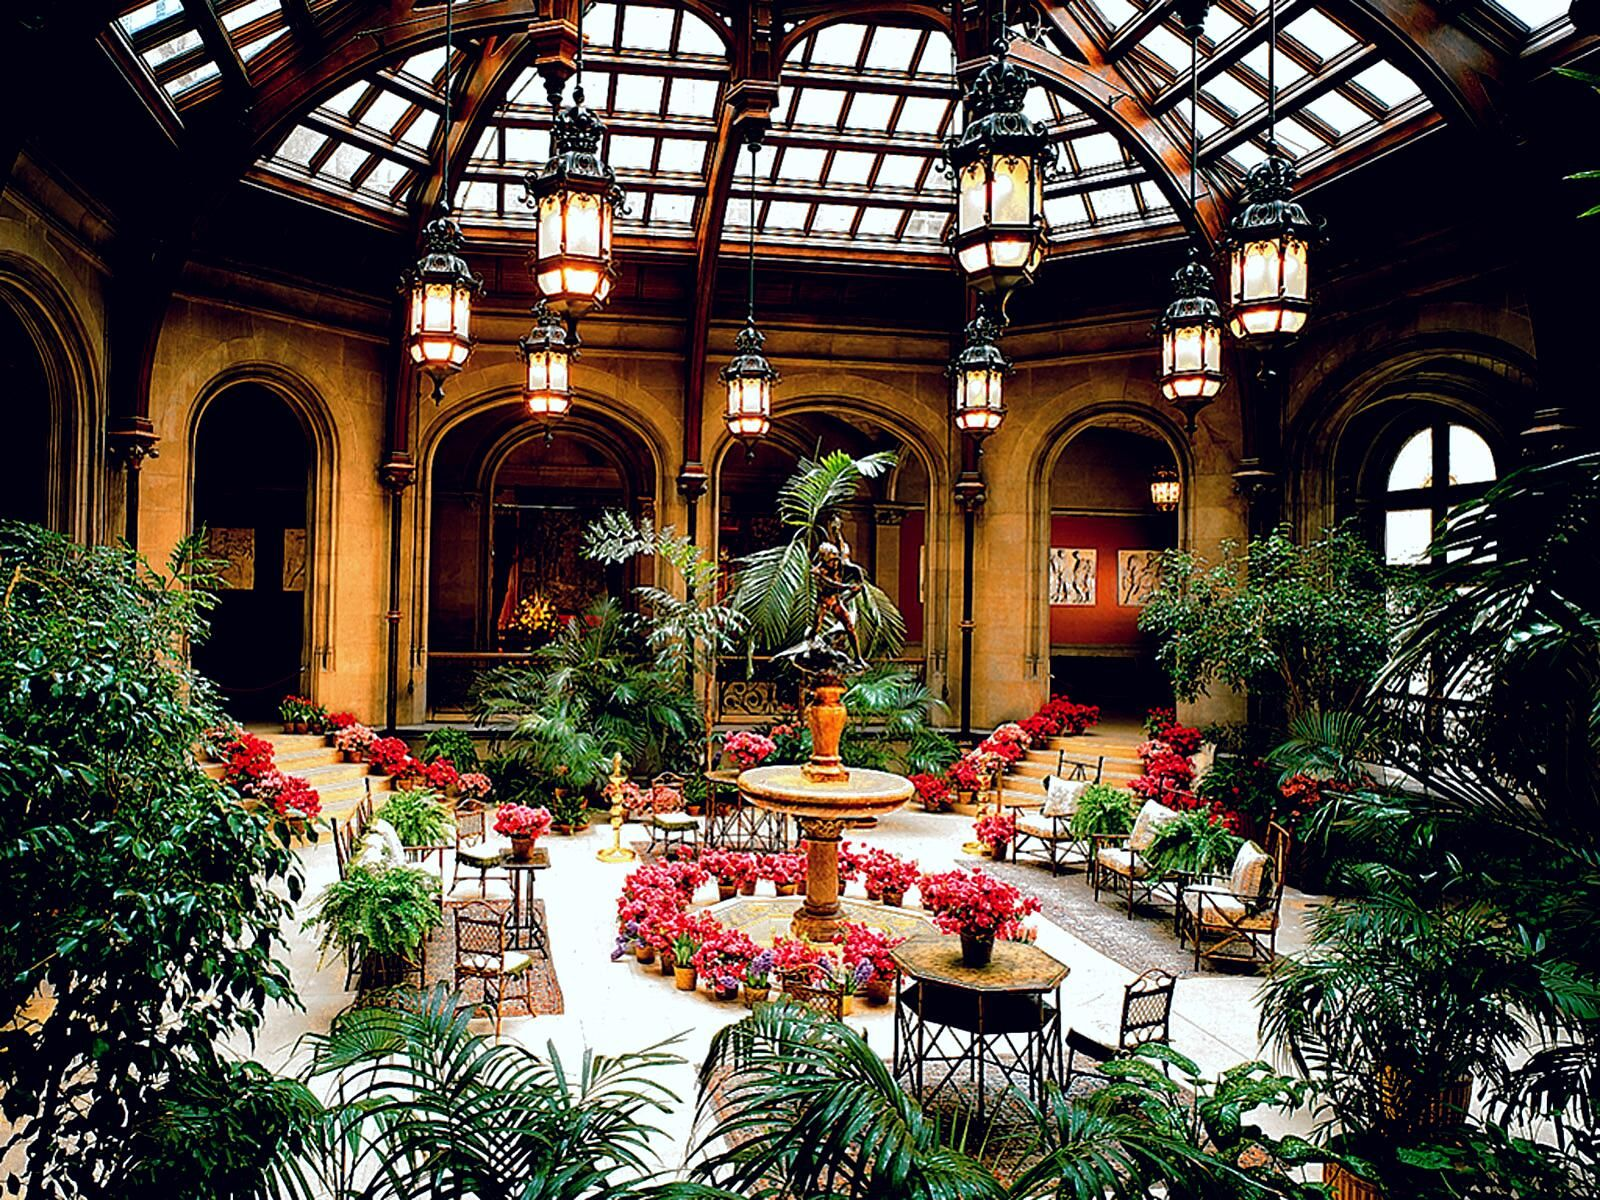 The Winter Garden At The Biltmore Estate, Asheville, NC.